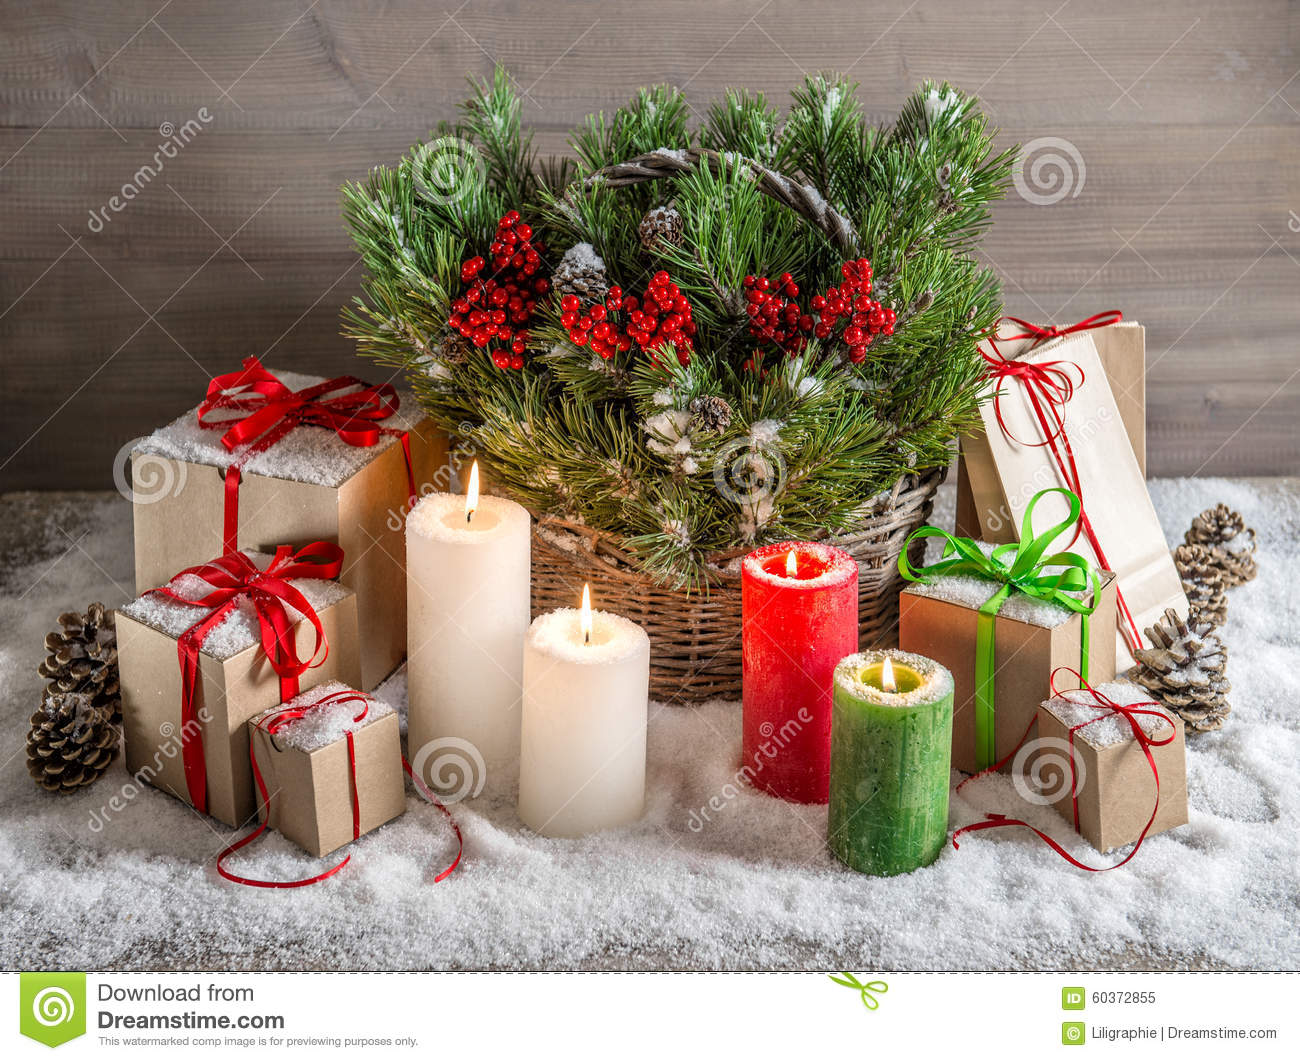 Christmas still life with burning candles and gift box